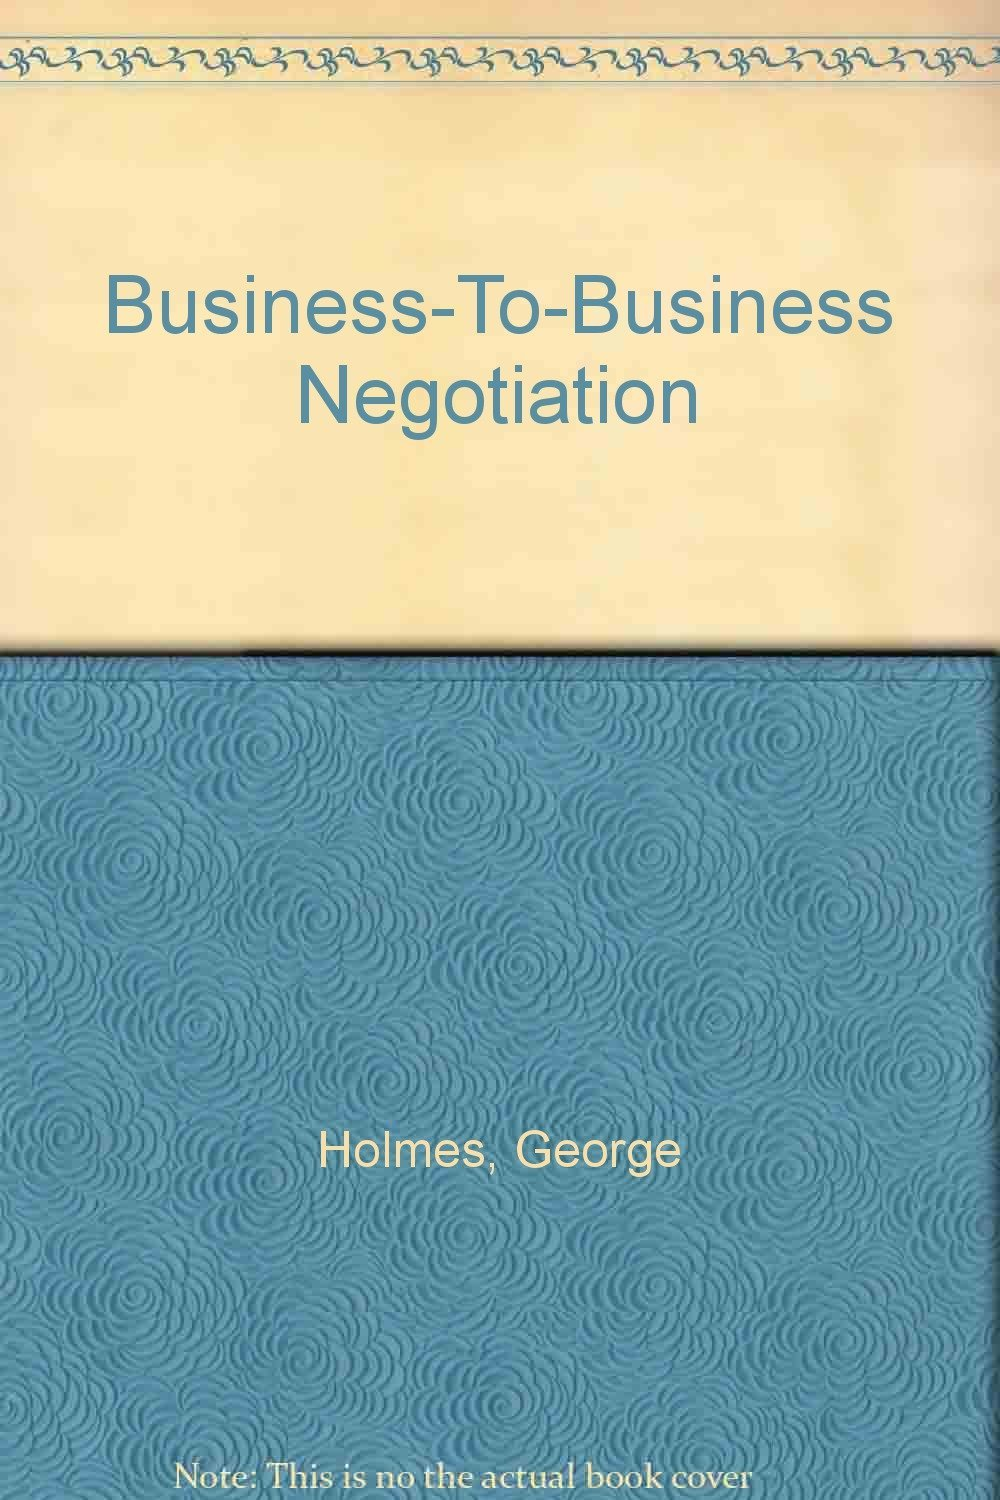 Business to Business Negotiation